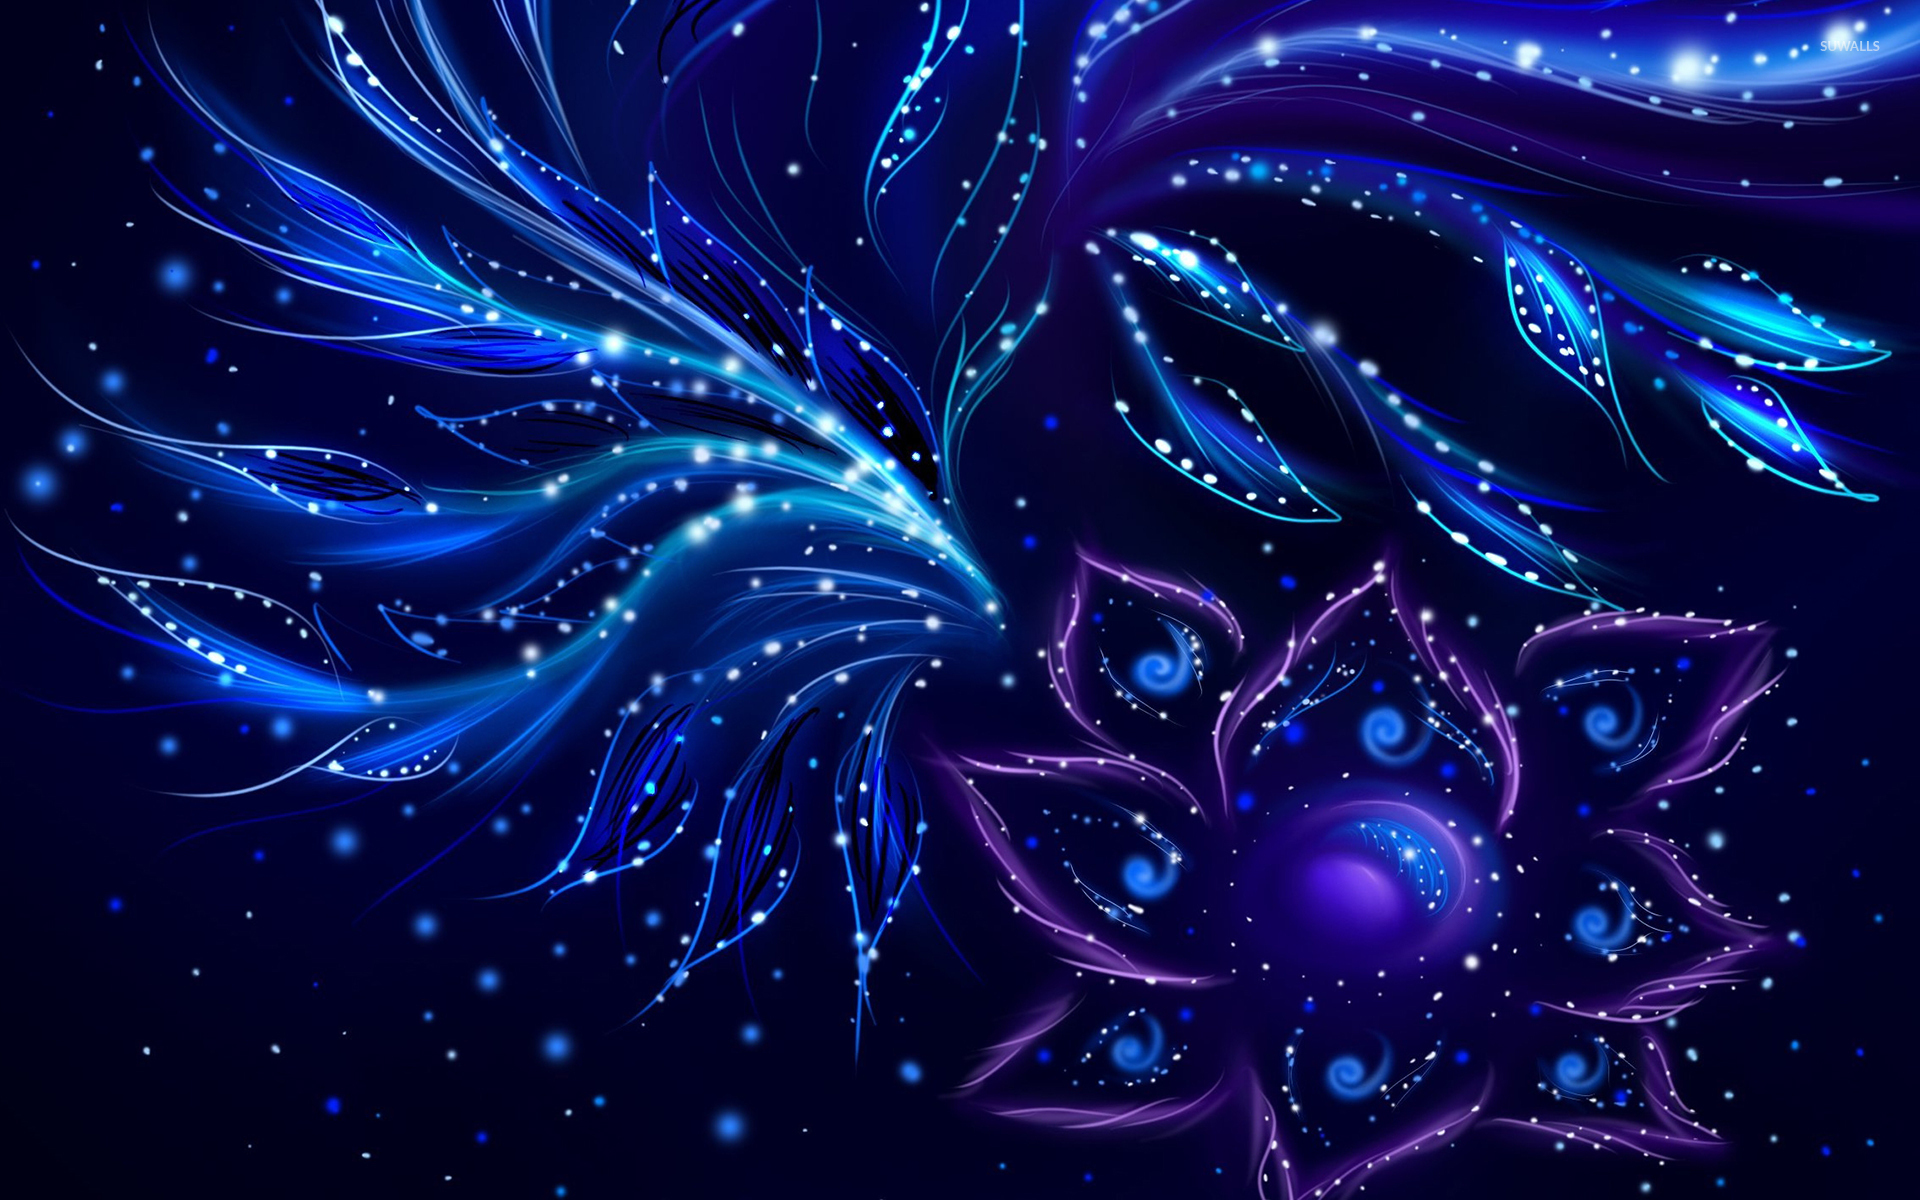 Blue swirls on the purple flower wallpaper abstract wallpapers blue swirls on the purple flower wallpaper izmirmasajfo Image collections